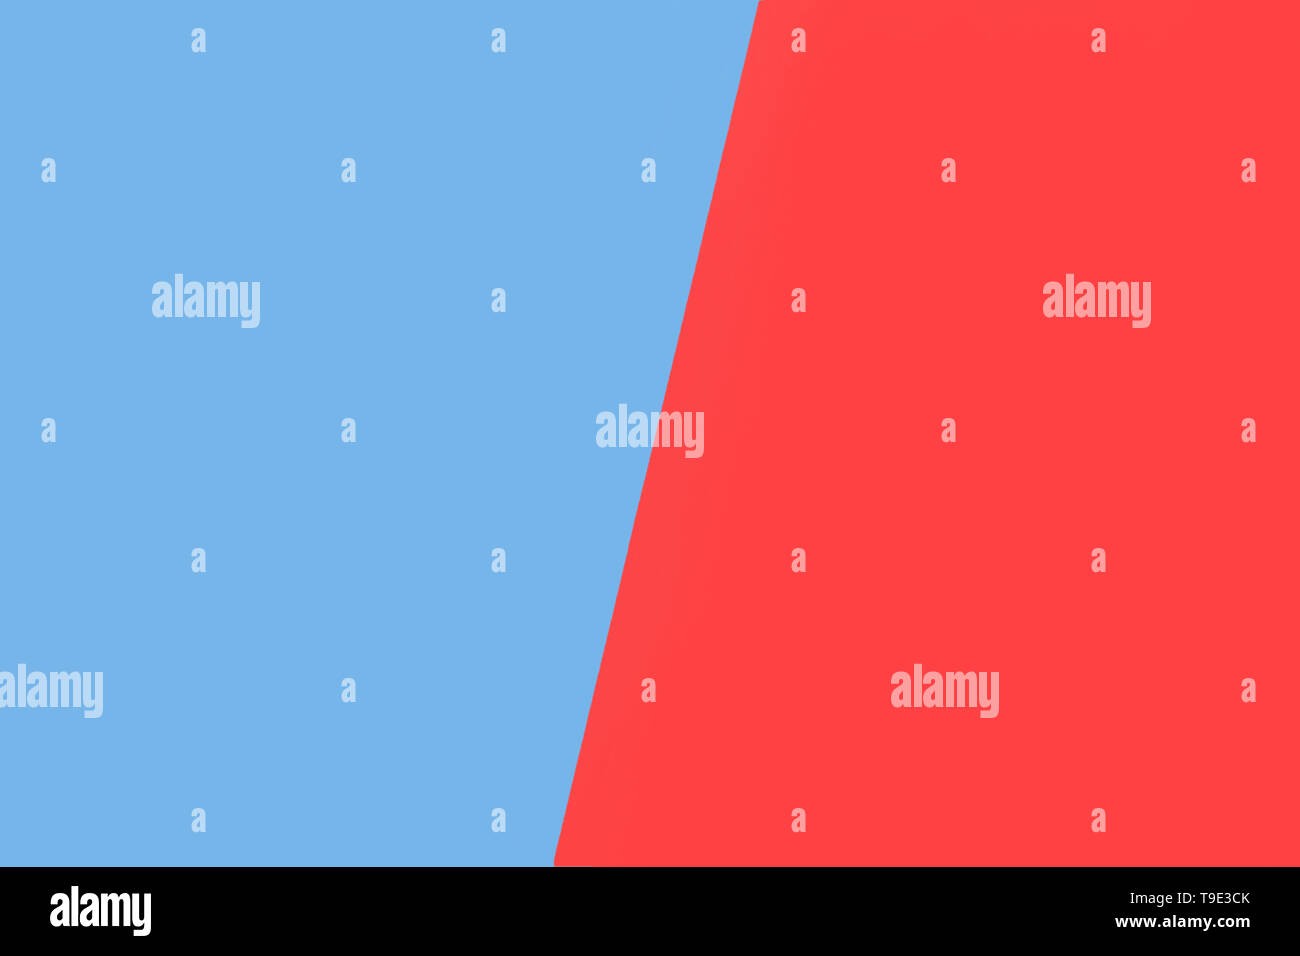 colorful paper background of two colors - blue and red - Stock Image